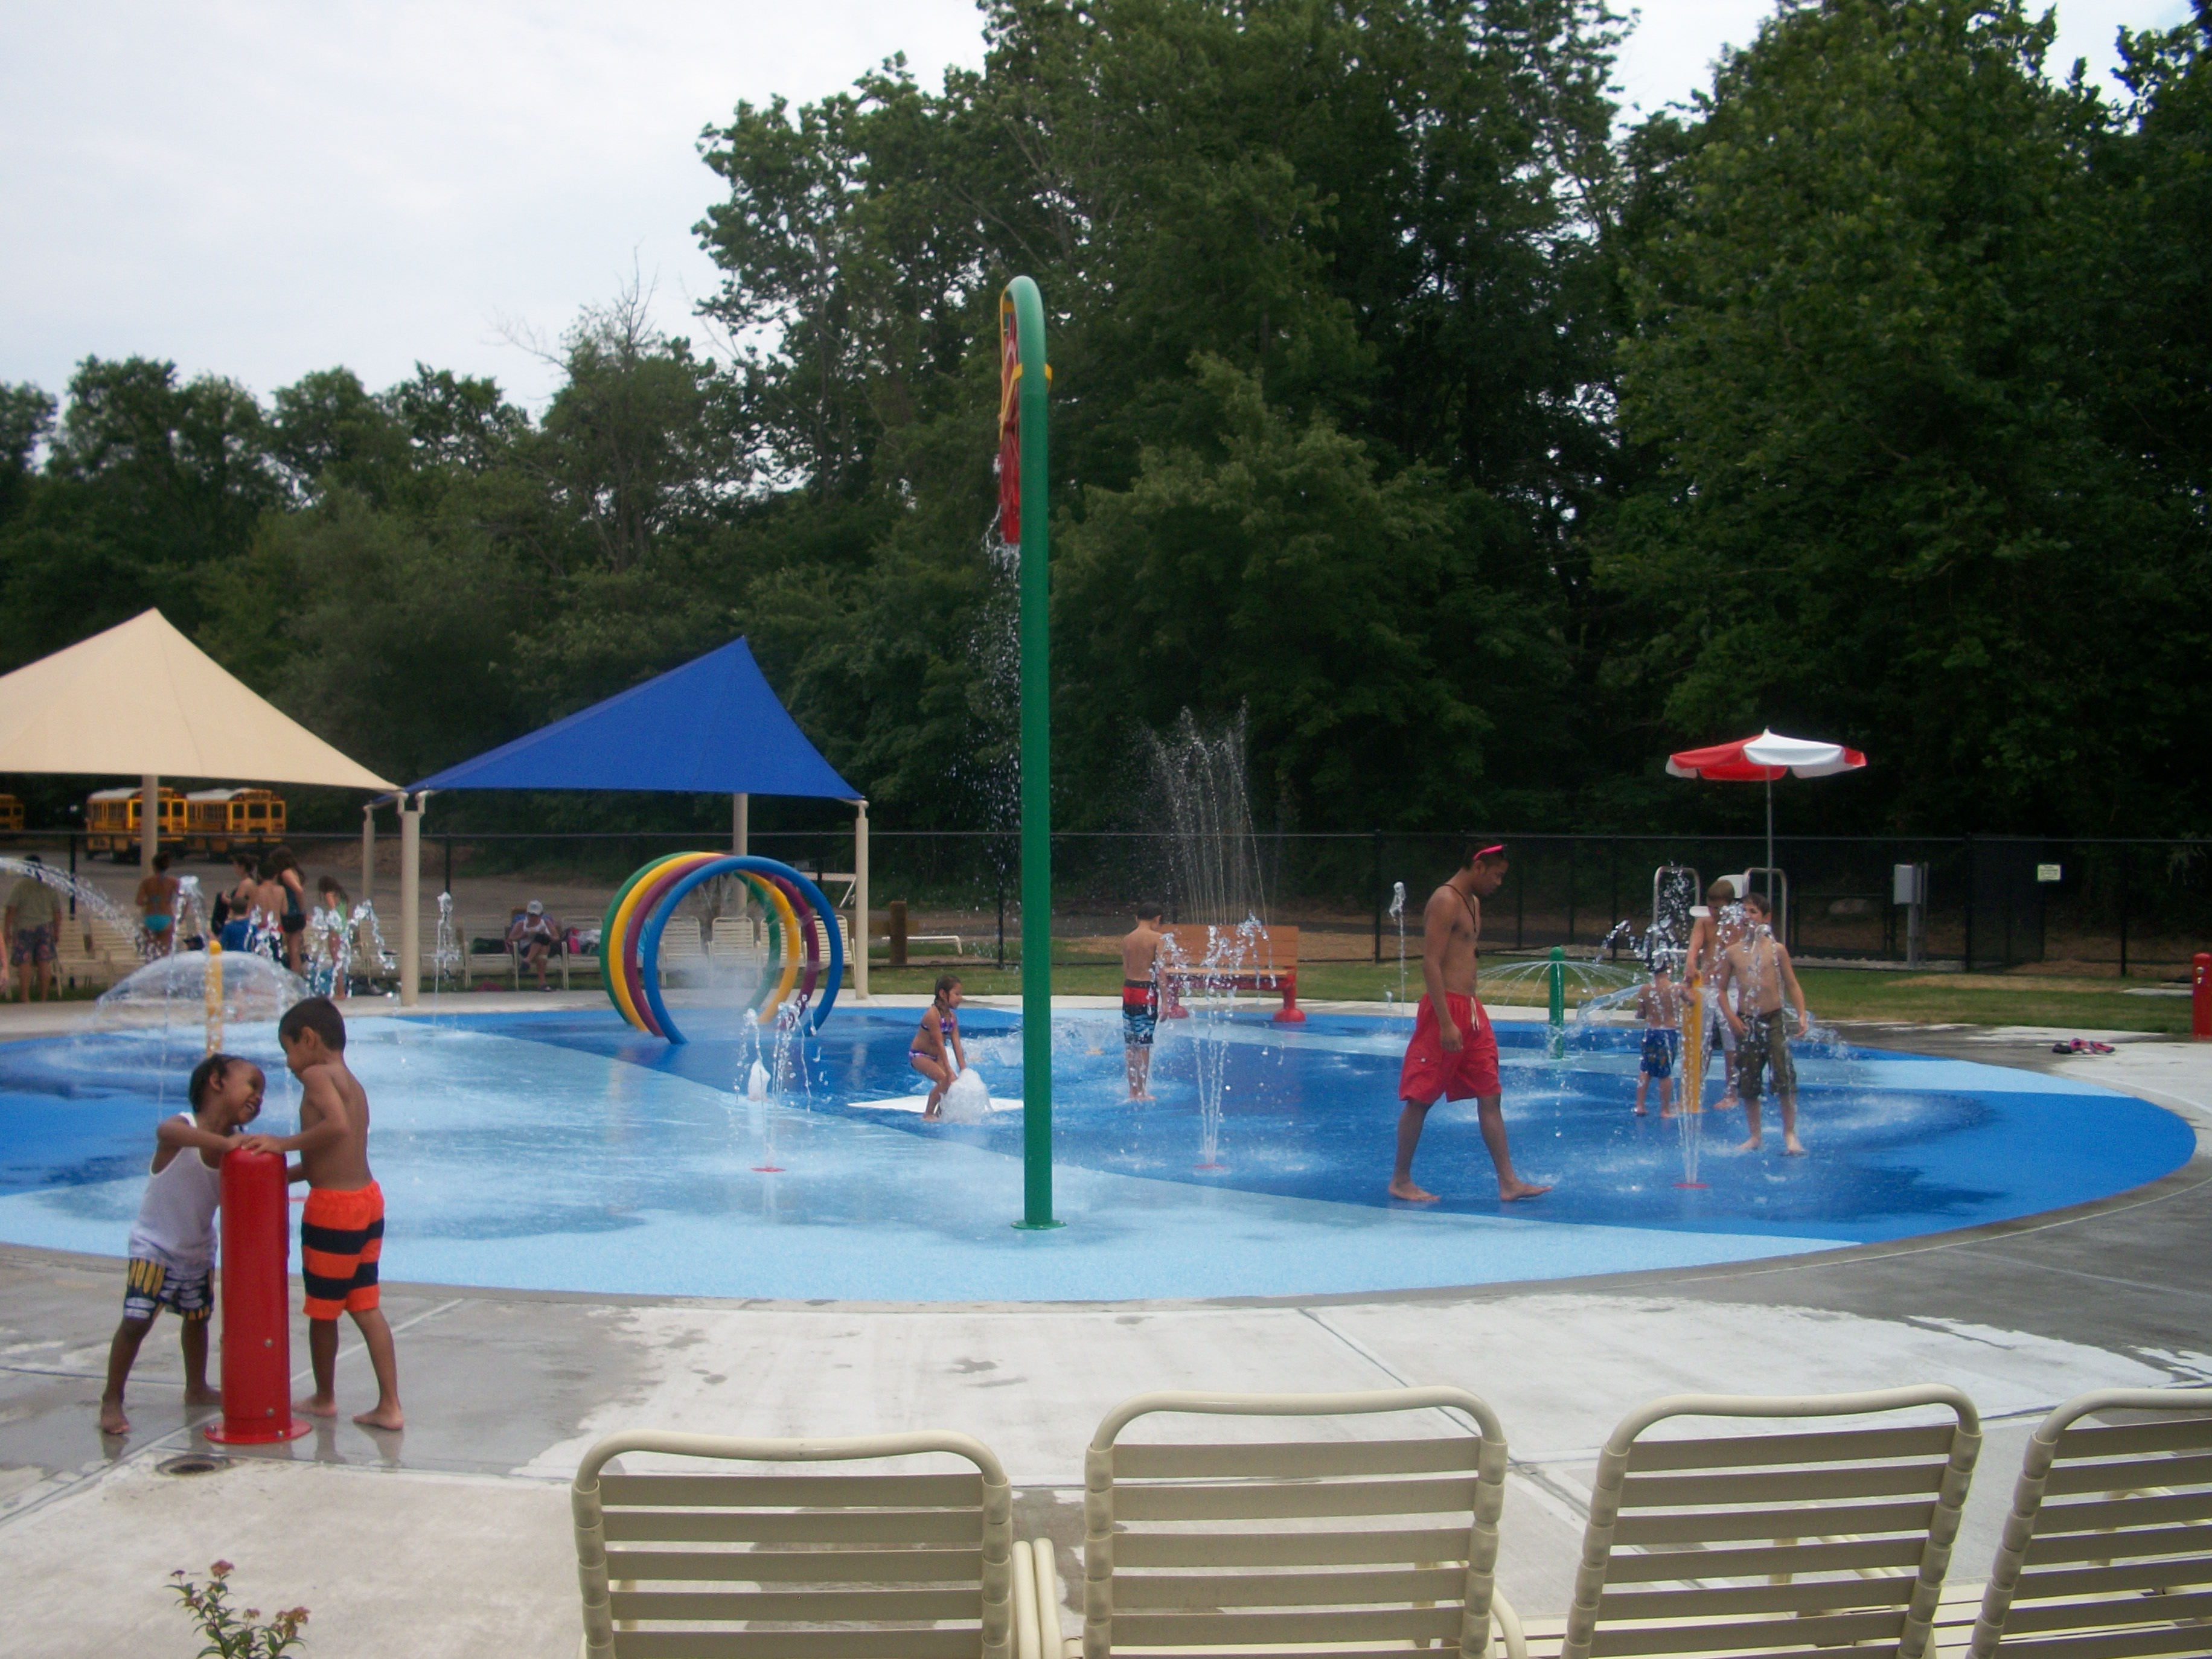 Uploaded Image: /uploads/images/SPLASH PAD.jpg